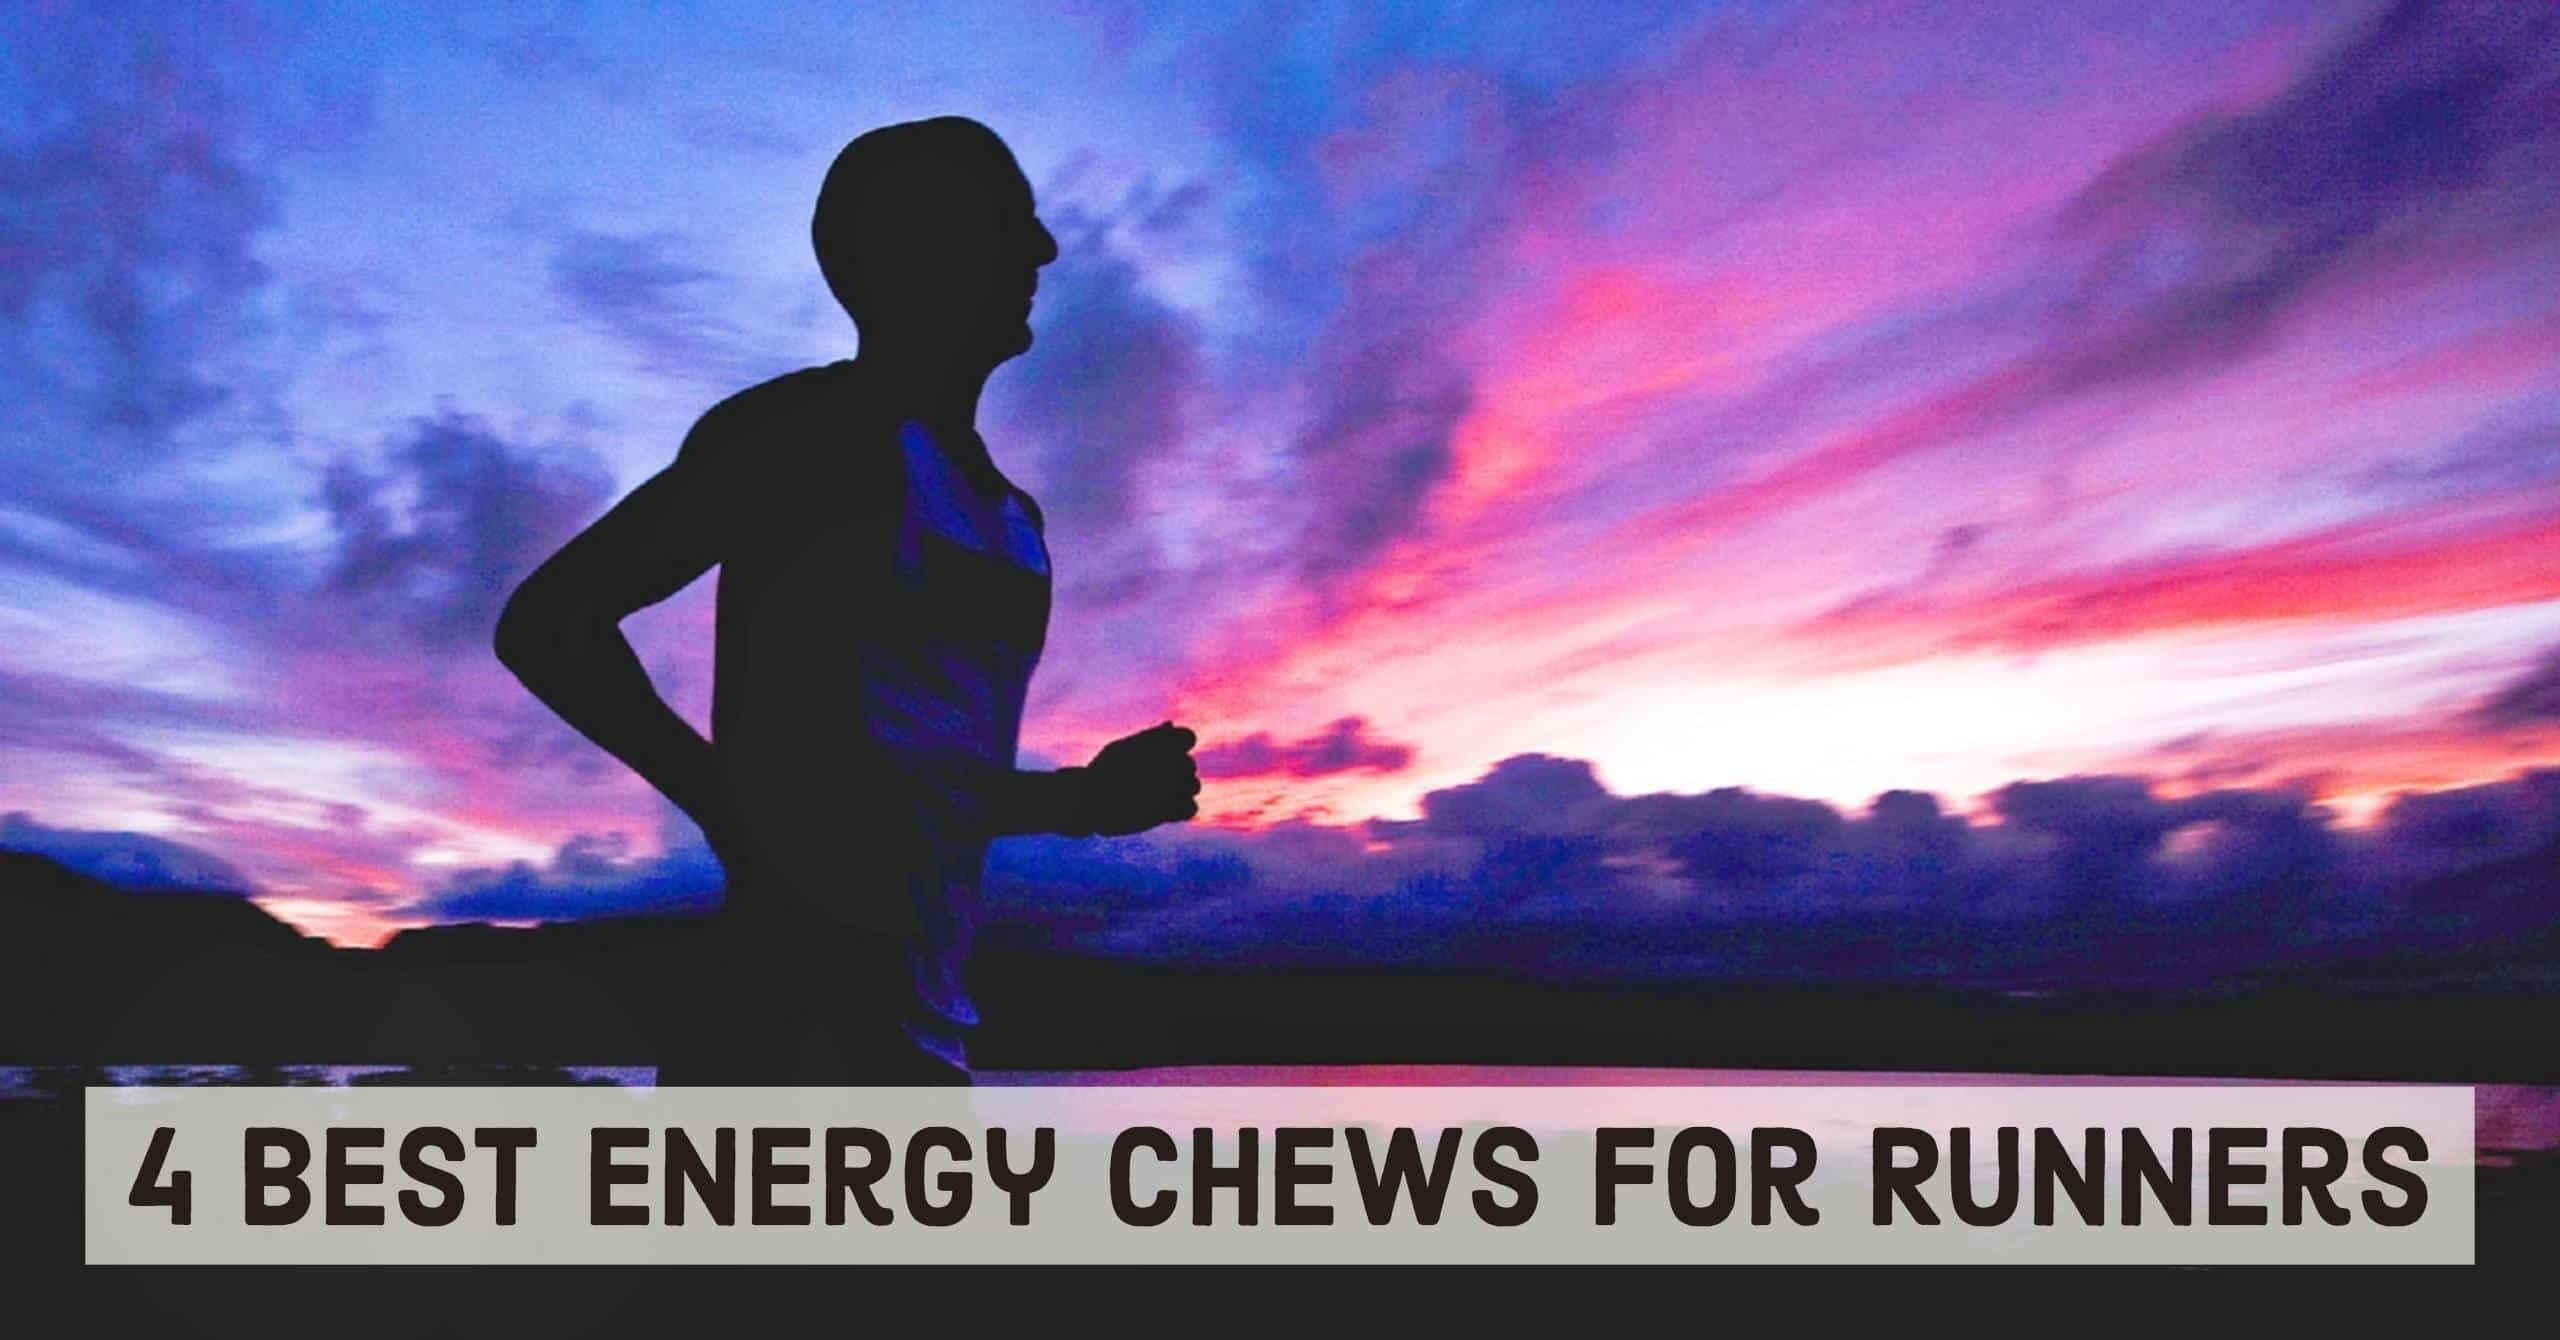 The 4 Best Energy Chews for Runners